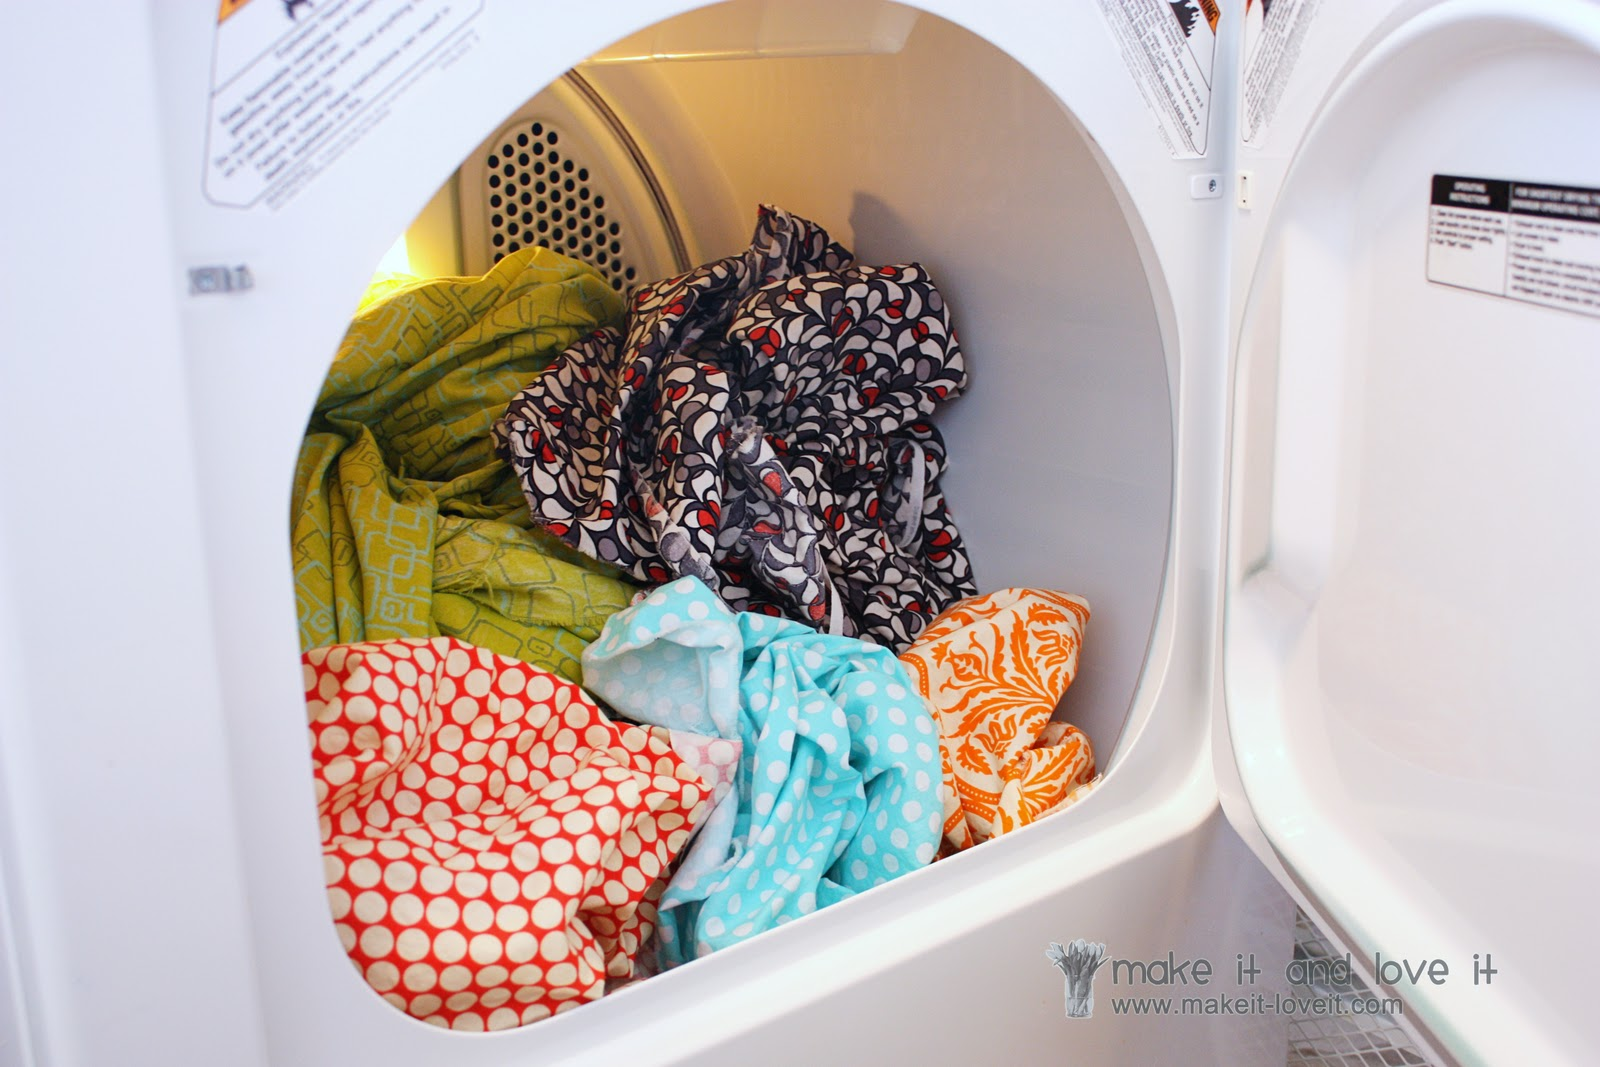 Does washing clothes before wearing them make them shrink?